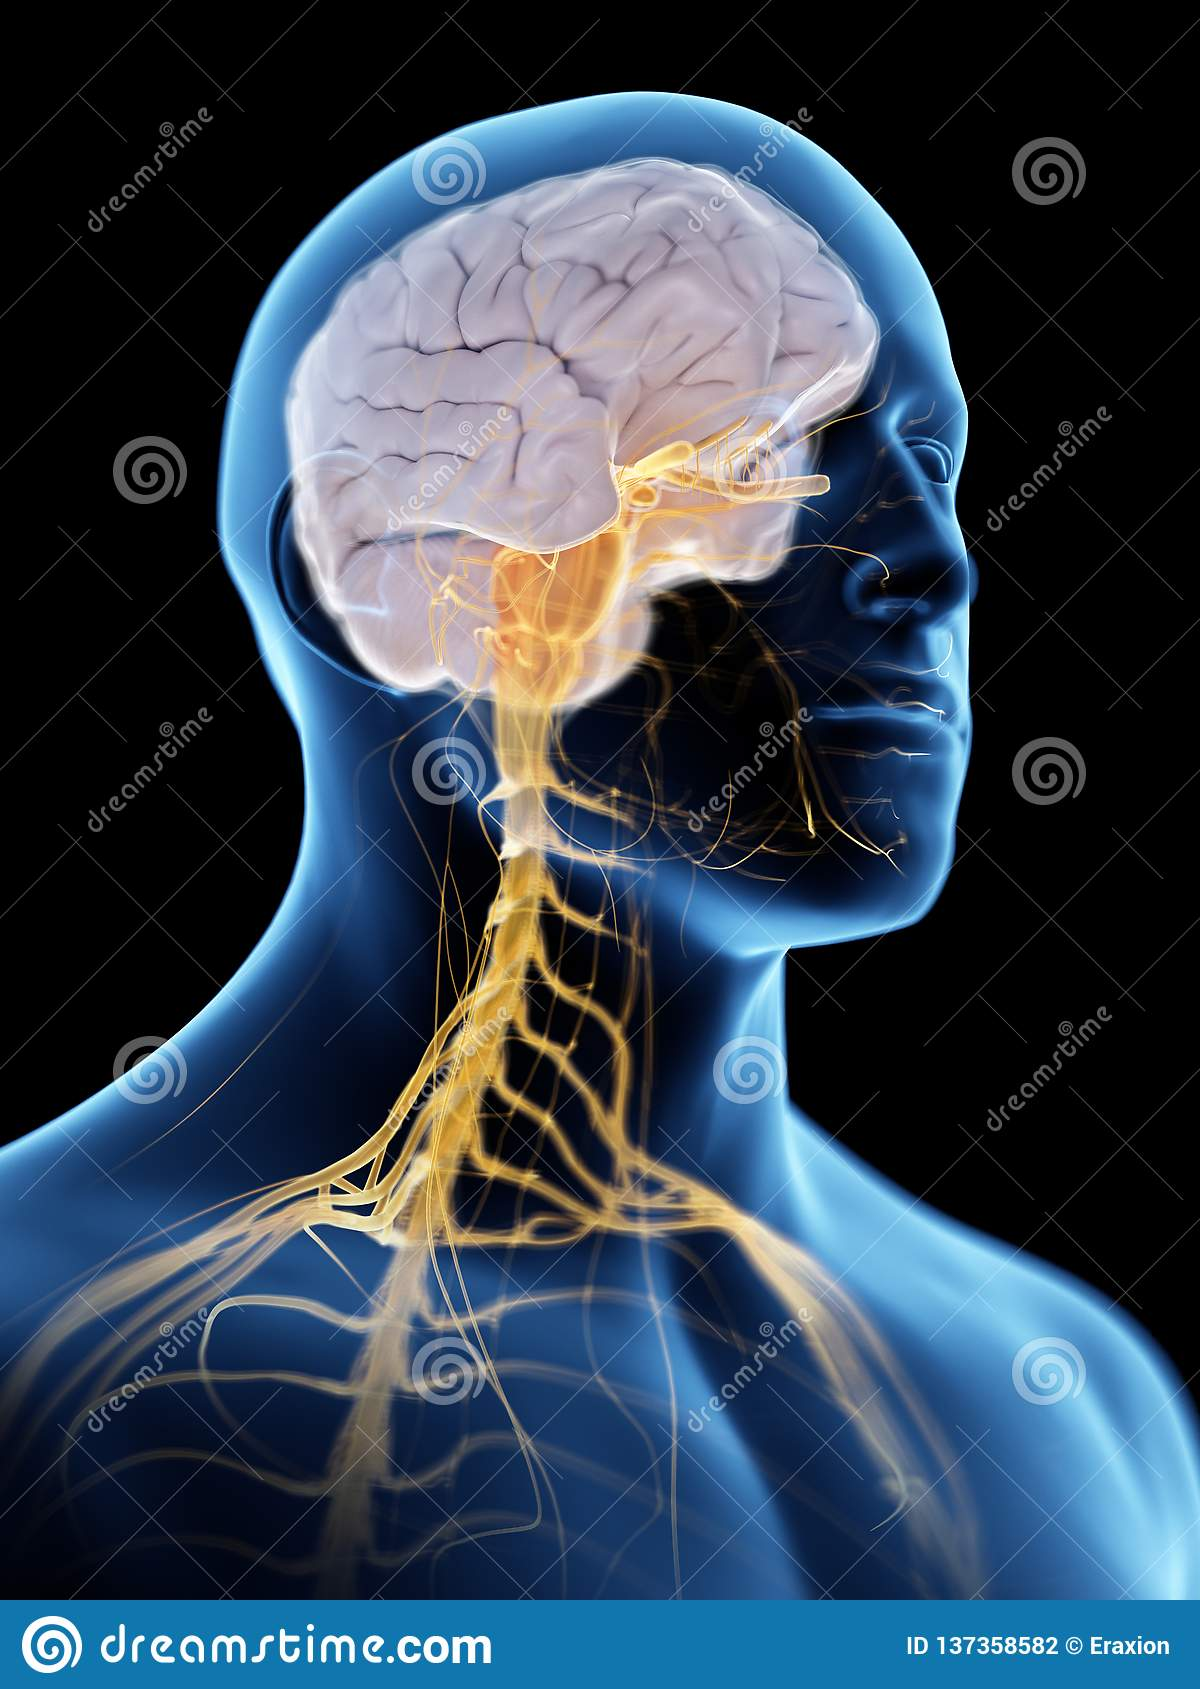 The brain and nervous system